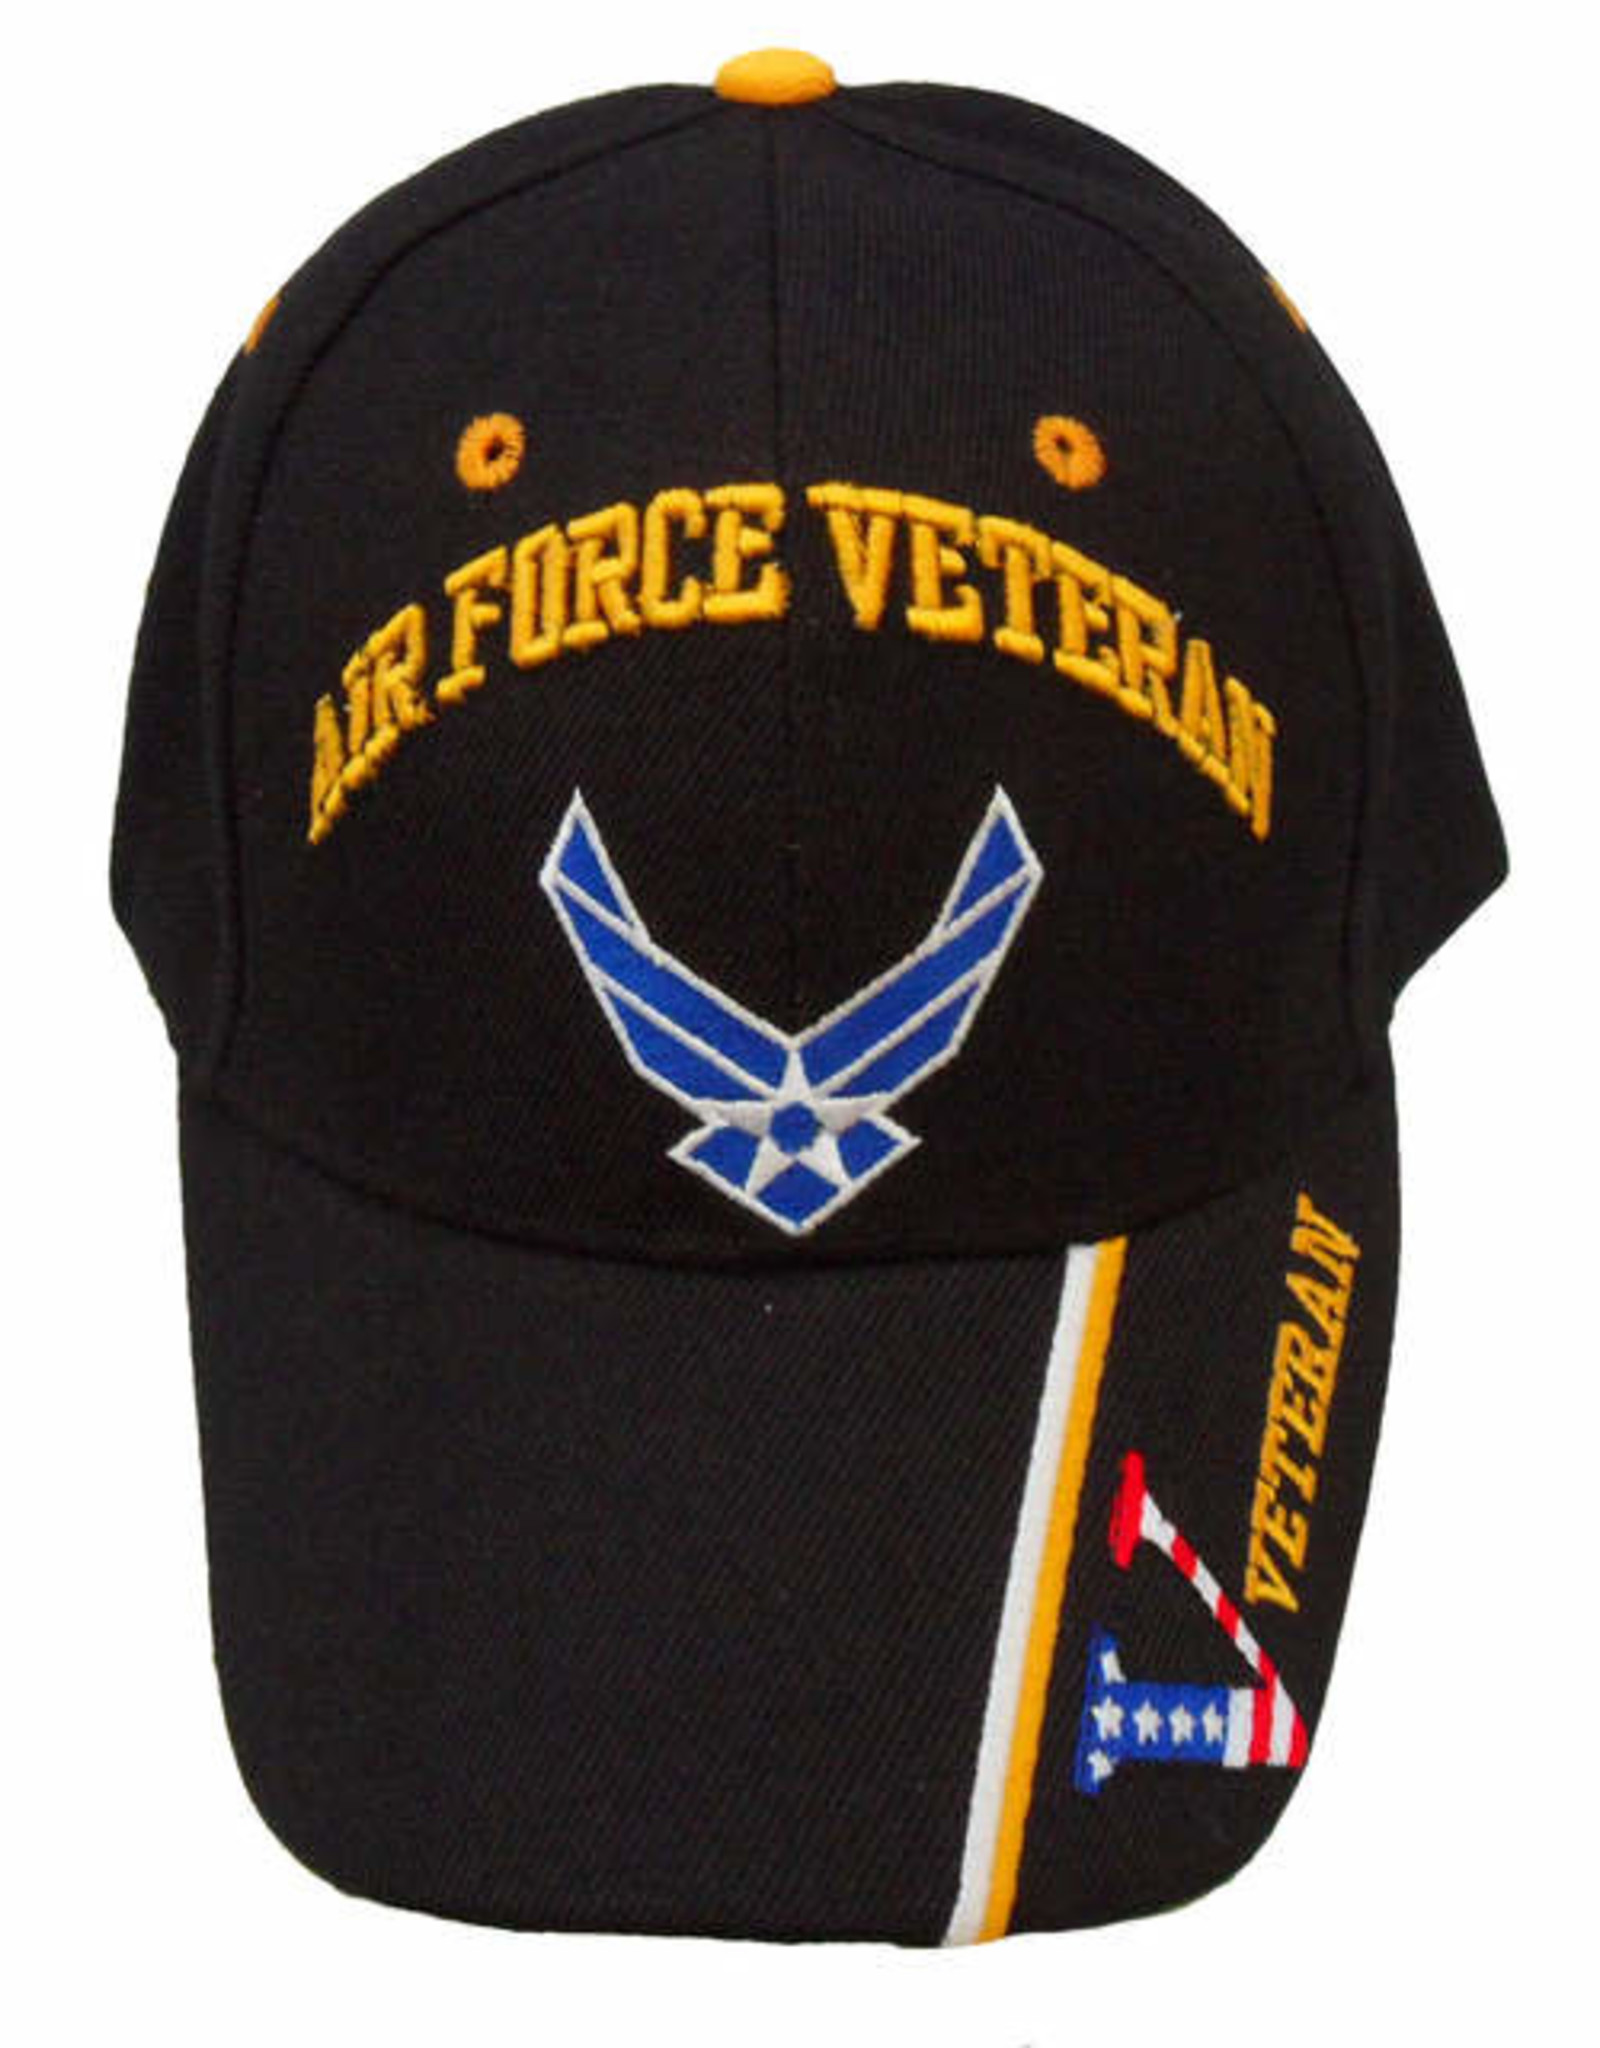 MidMil Air Force Veteran Hat with Wing Emblem and Veteran on Bill Black